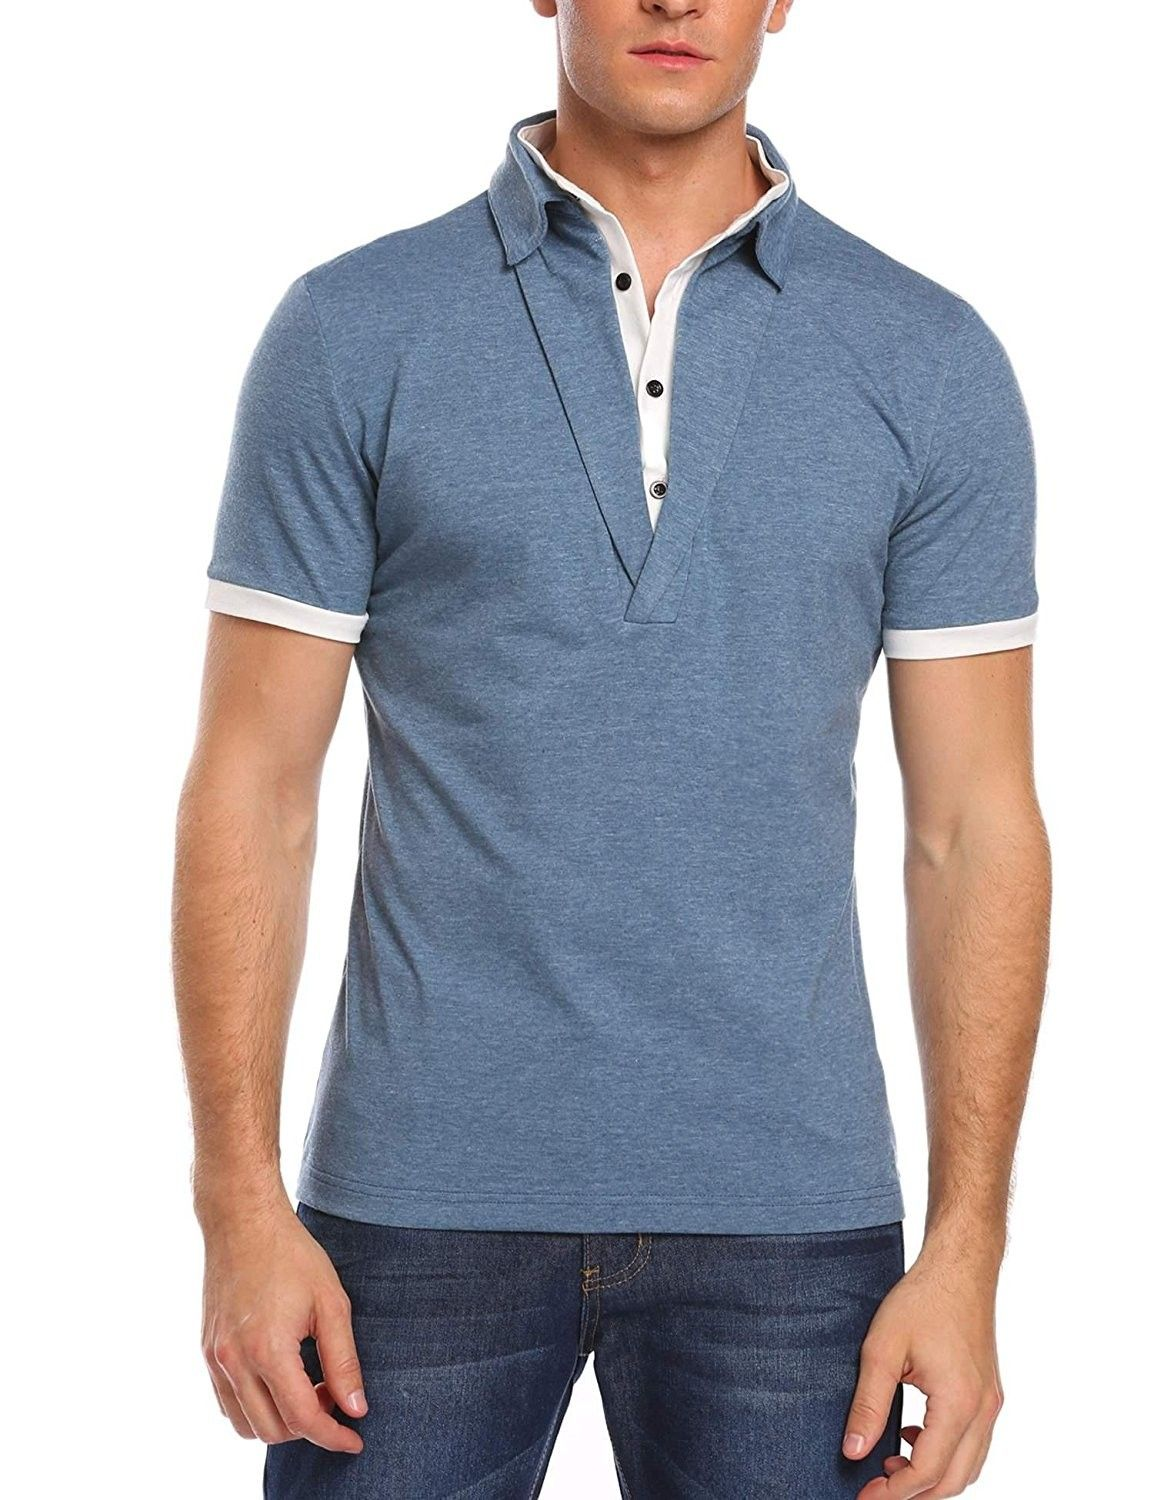 Men Fashion T-shirt Tops Long Sleeve Blouse V-Veck Pullover Casual New Slim Fit